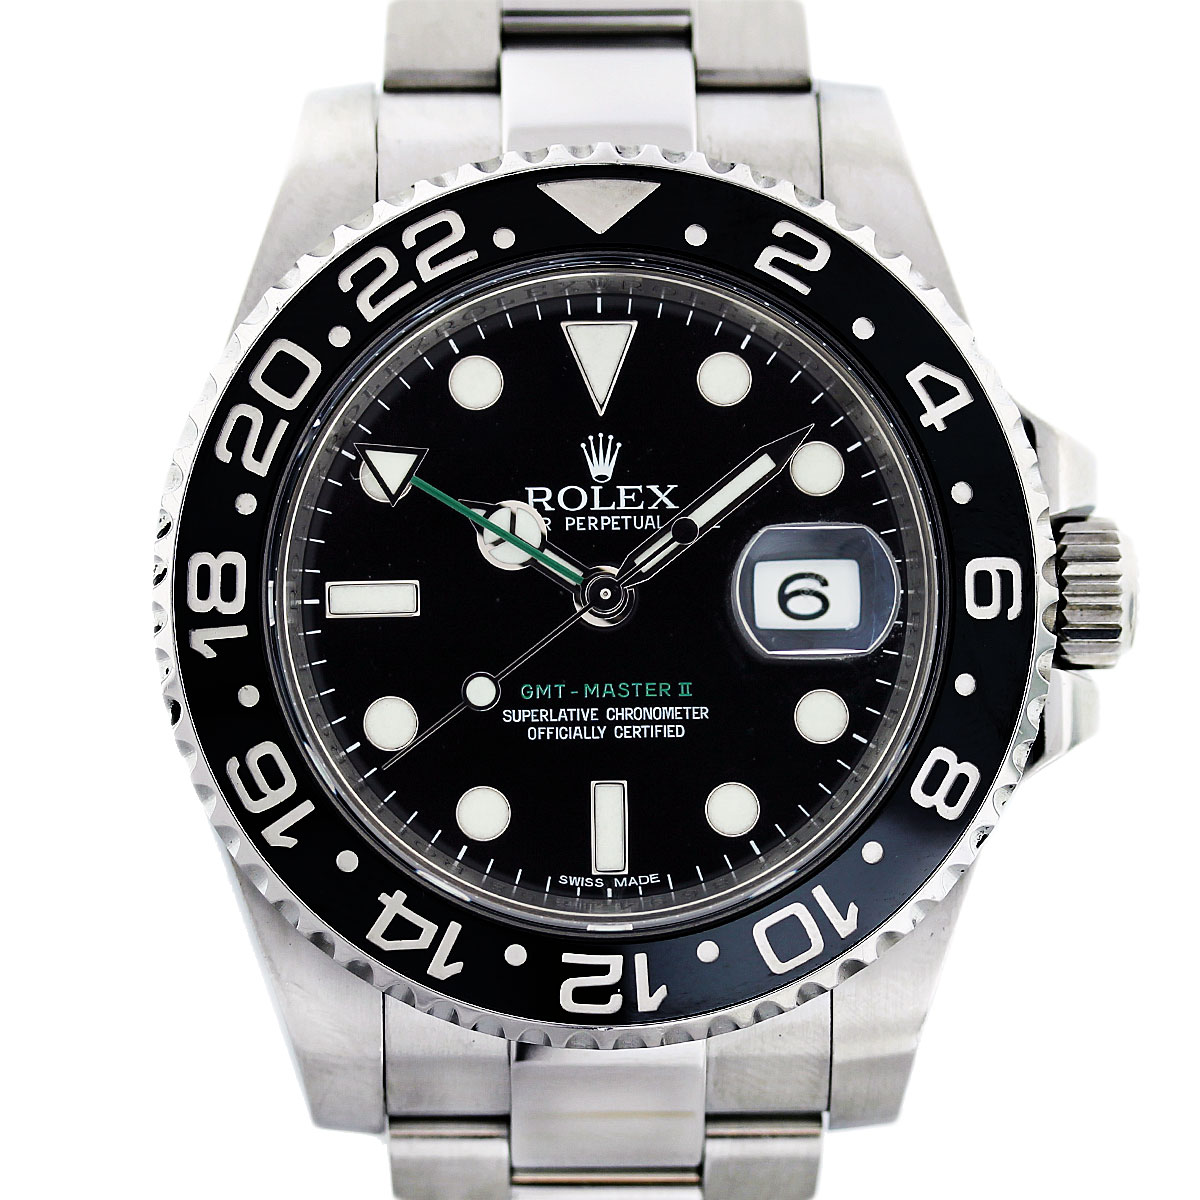 Rolex gmt master ii 116710 stainless steel watch boca raton for Rolex gmt master